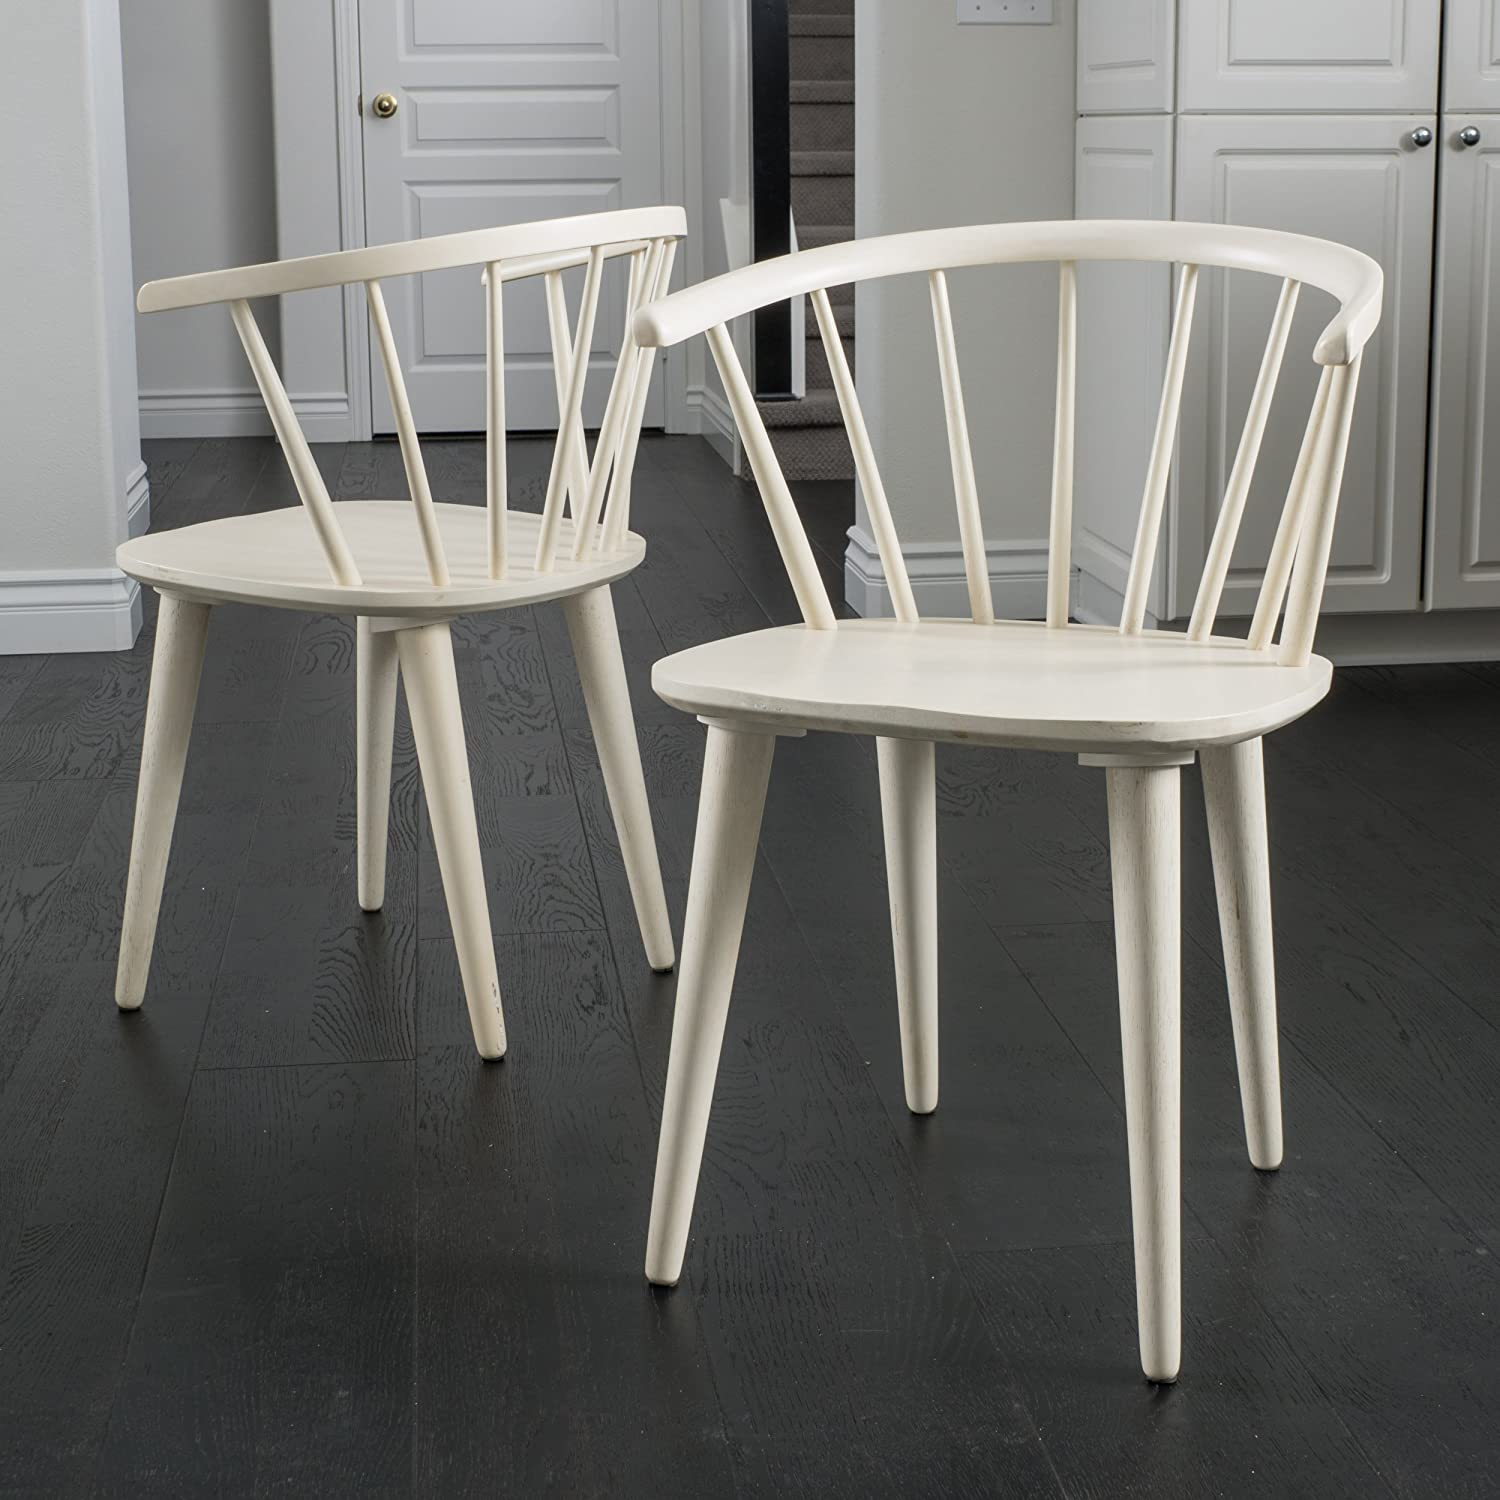 Christopher Knight Home 296032 Countryside Rounded Back Spindle Dining Chair, Antique White